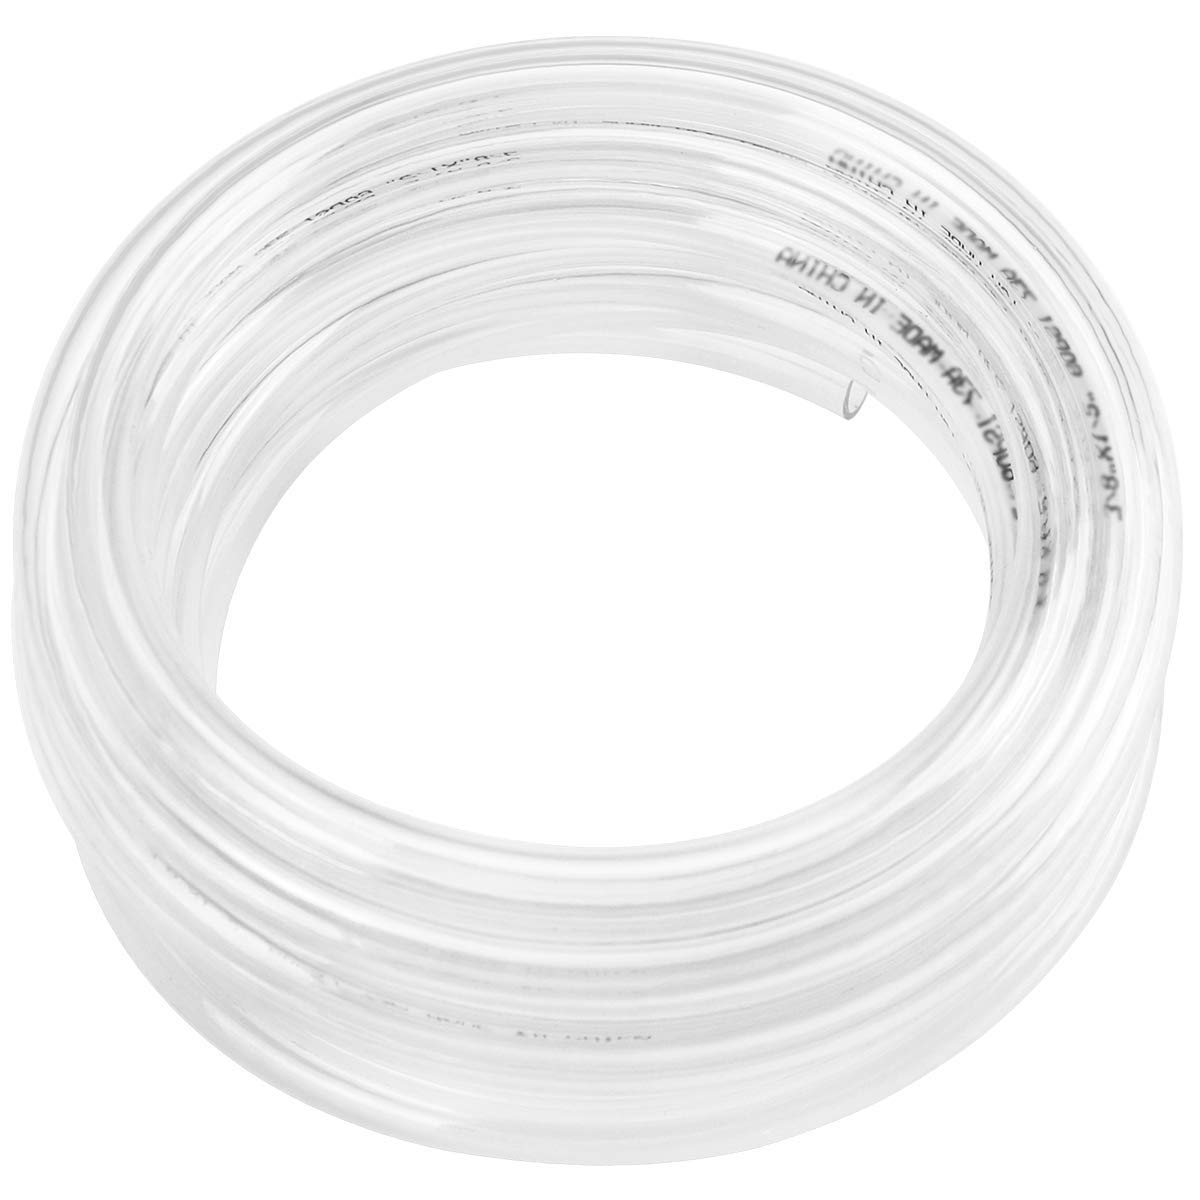 "25ft x 3/4"" ID Clear Vinyl Tubing, Flexible Hybrid PVC Tubing Hose, Lightweight Plastic Tube UV Chemical Resistant Vinyl Hose, BPA Free and Non Toxic"